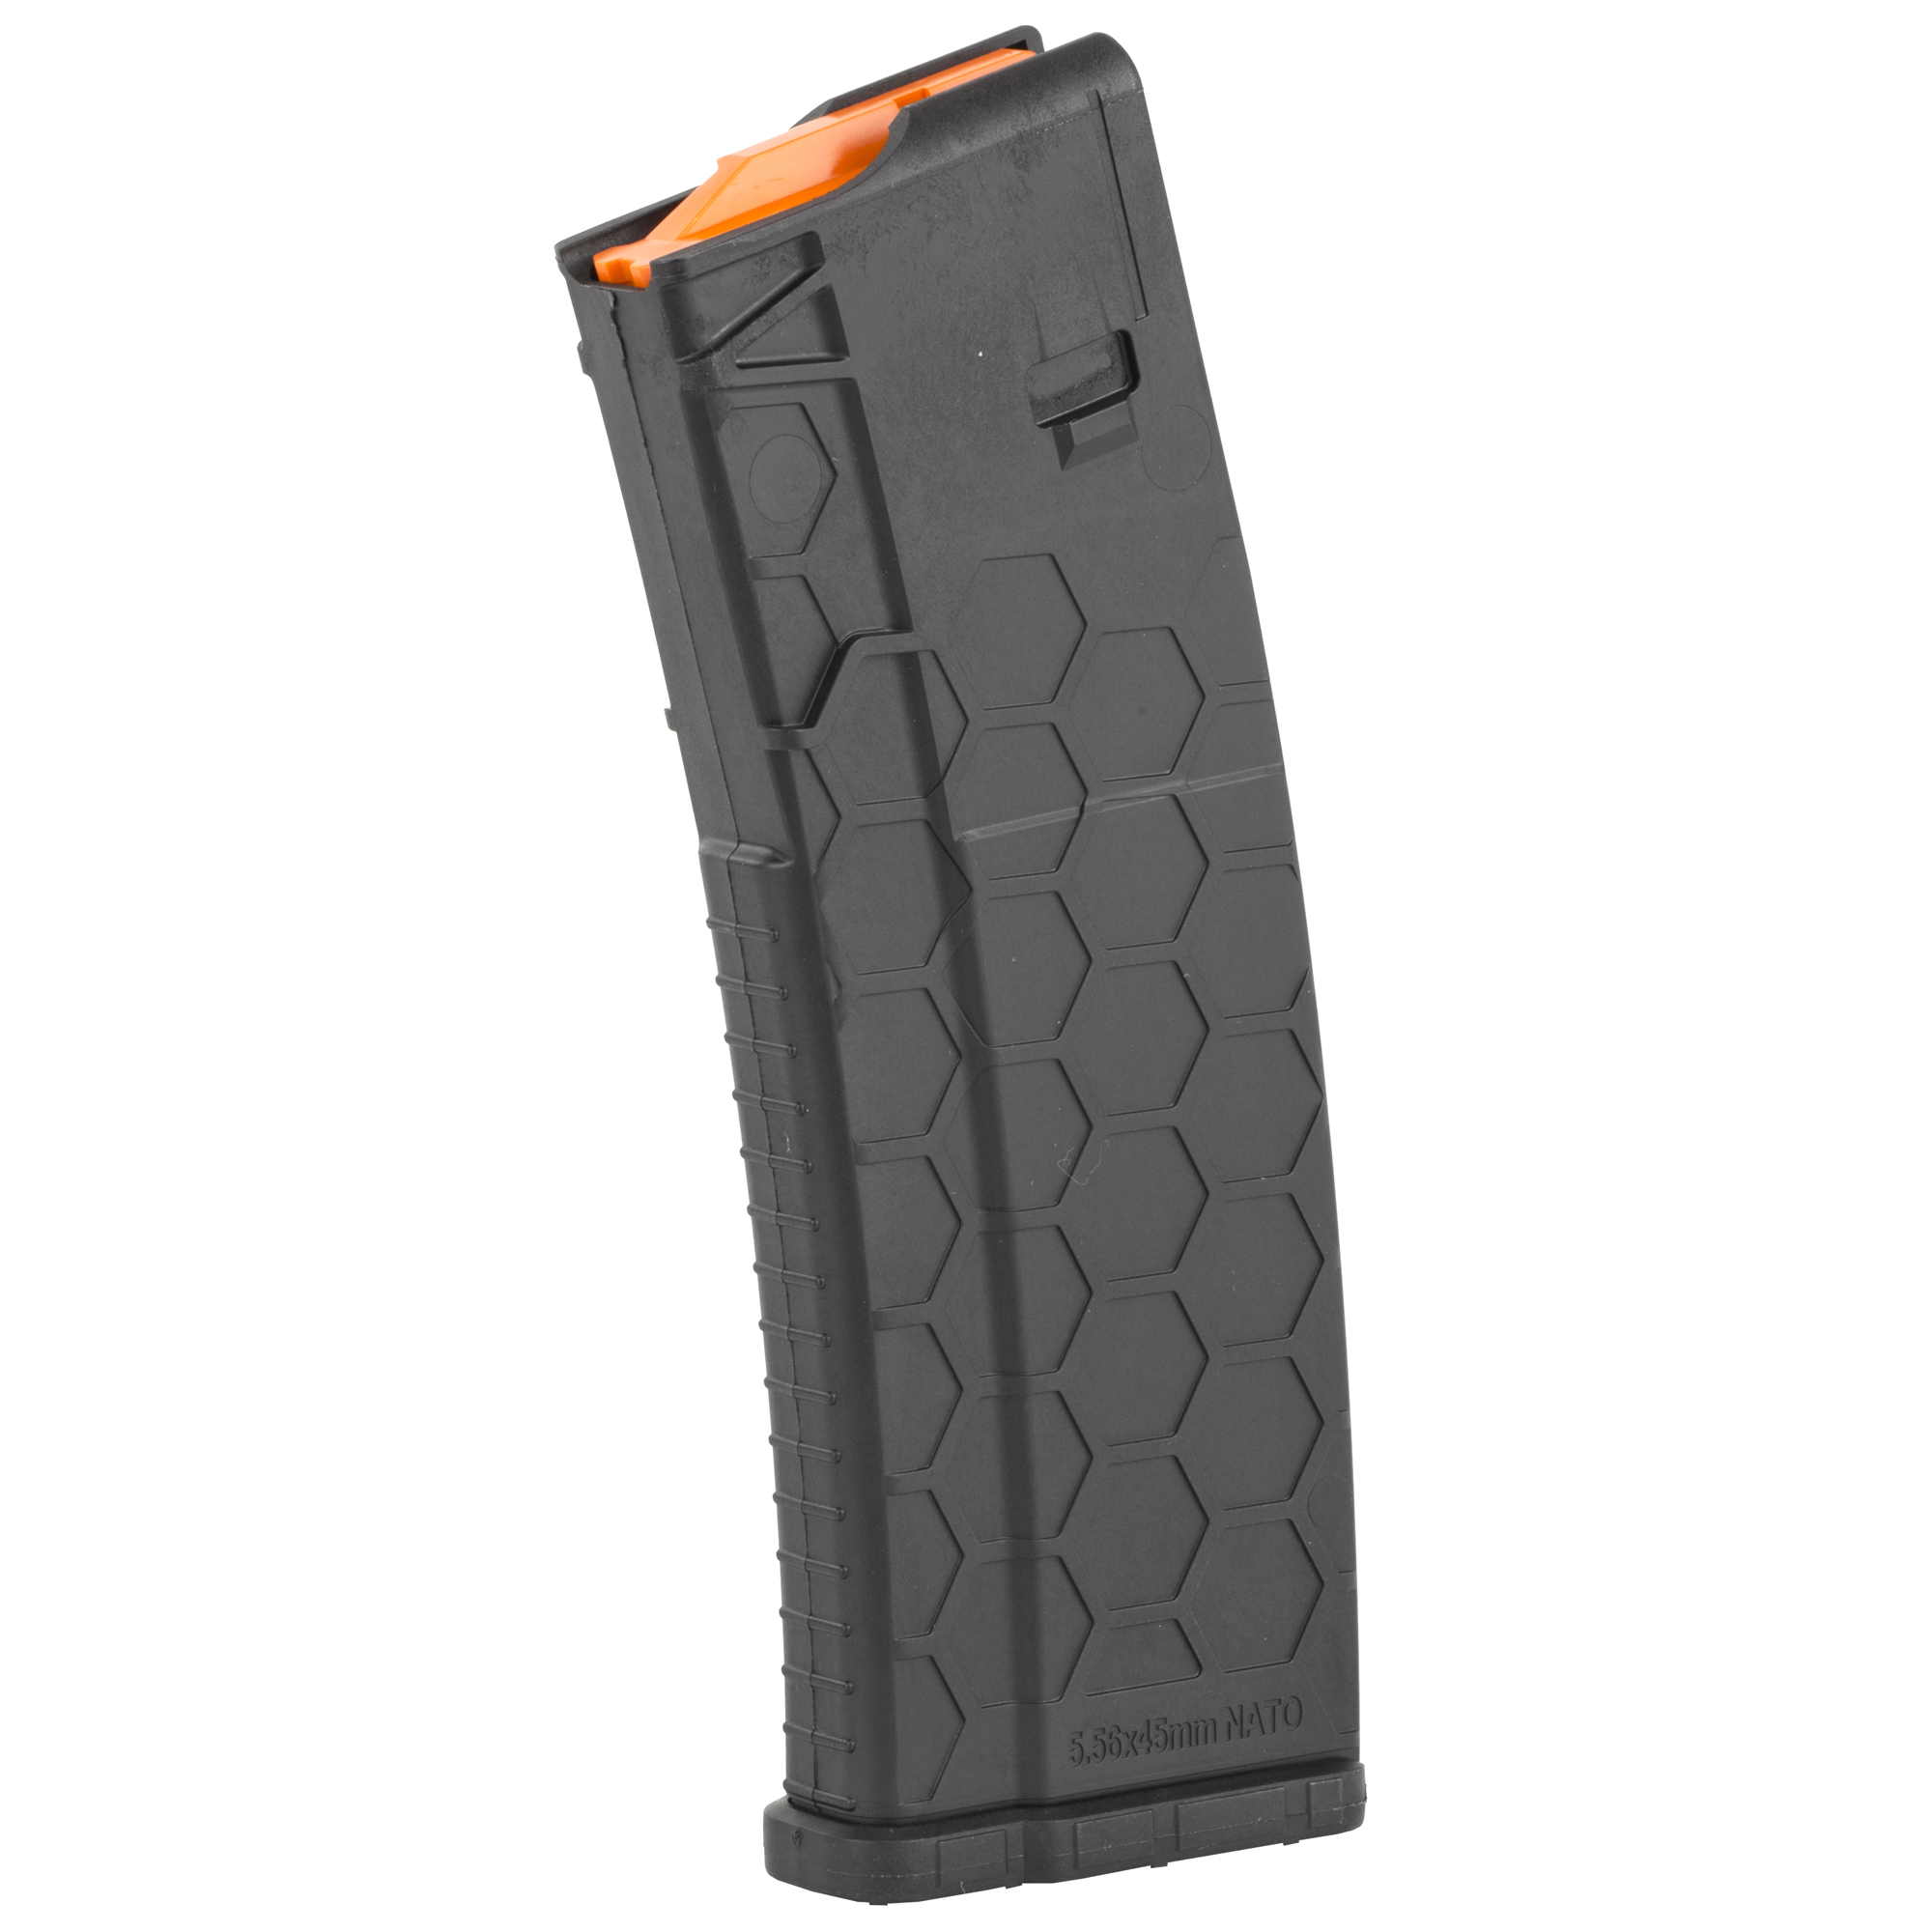 """The next evolution in AR15 magazines is here - the SENTRY Hexmag featuring the iconic Hexture design pattern. Enhancements make this the most compatible"""" user-friendly magazine on the market"""" while SENTRY's proprietary PolyHex2 Advanced Composite delivers superior strength and reliable performance for lifetime usability."""